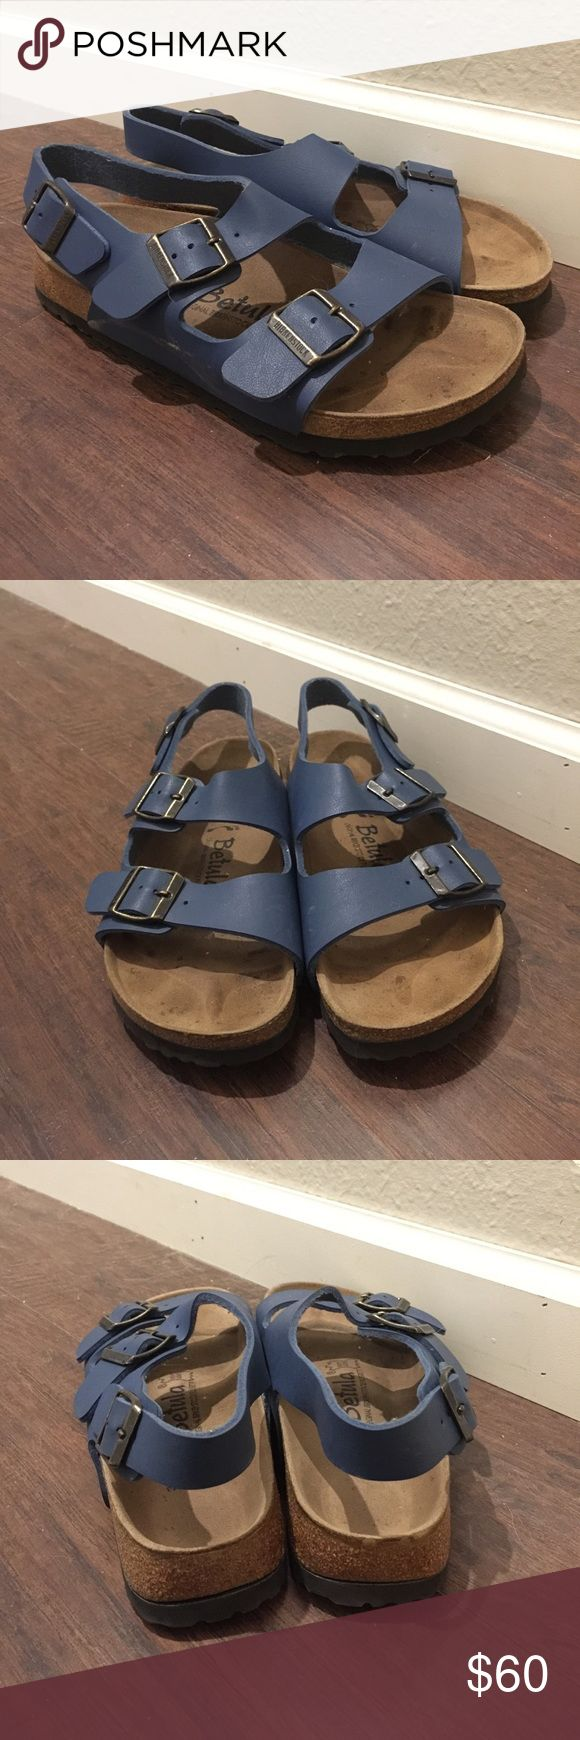 Birkenstock Betula Sandals Birkenstock Betula Sandals size 38 Birkenstock Shoes Sandals